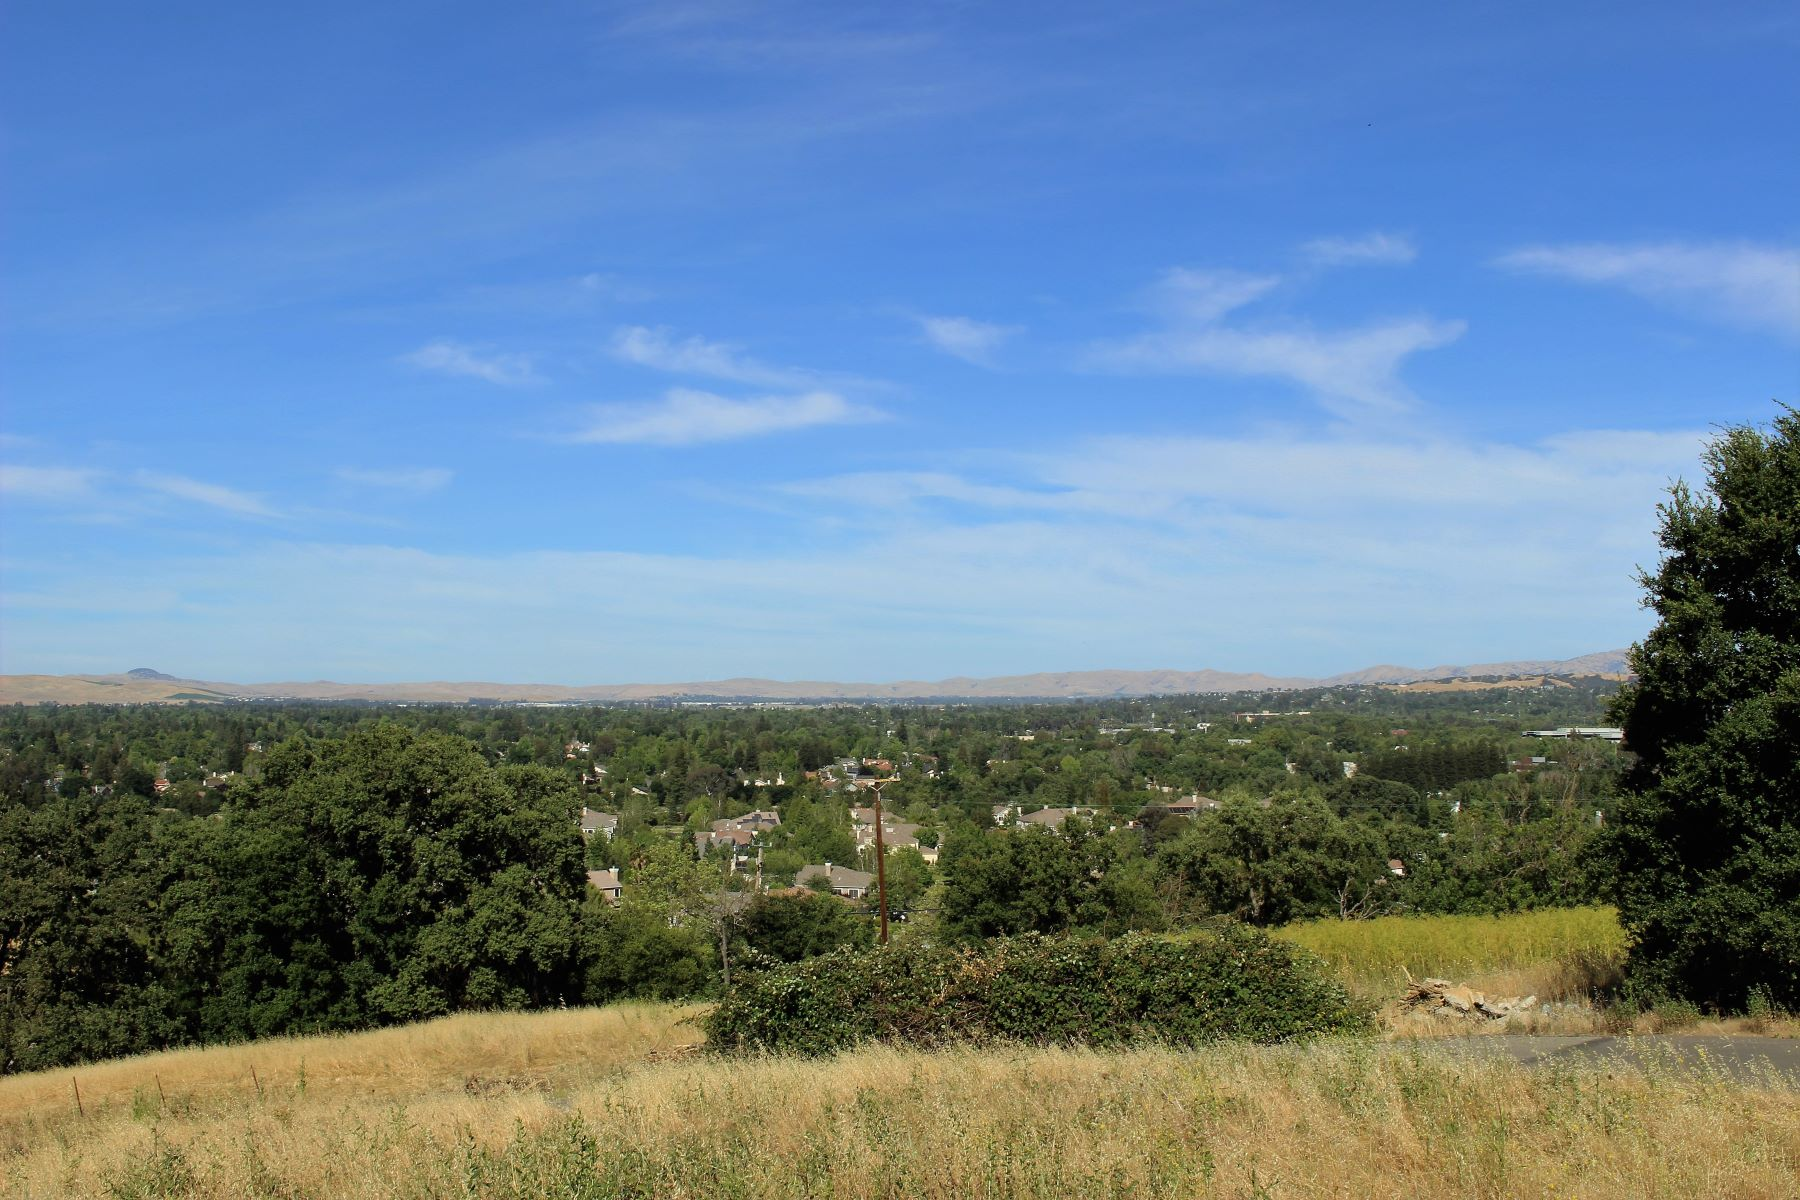 Land for Sale at Foothill Rd 3678 Foothill Rd Pleasanton, California 94588 United States